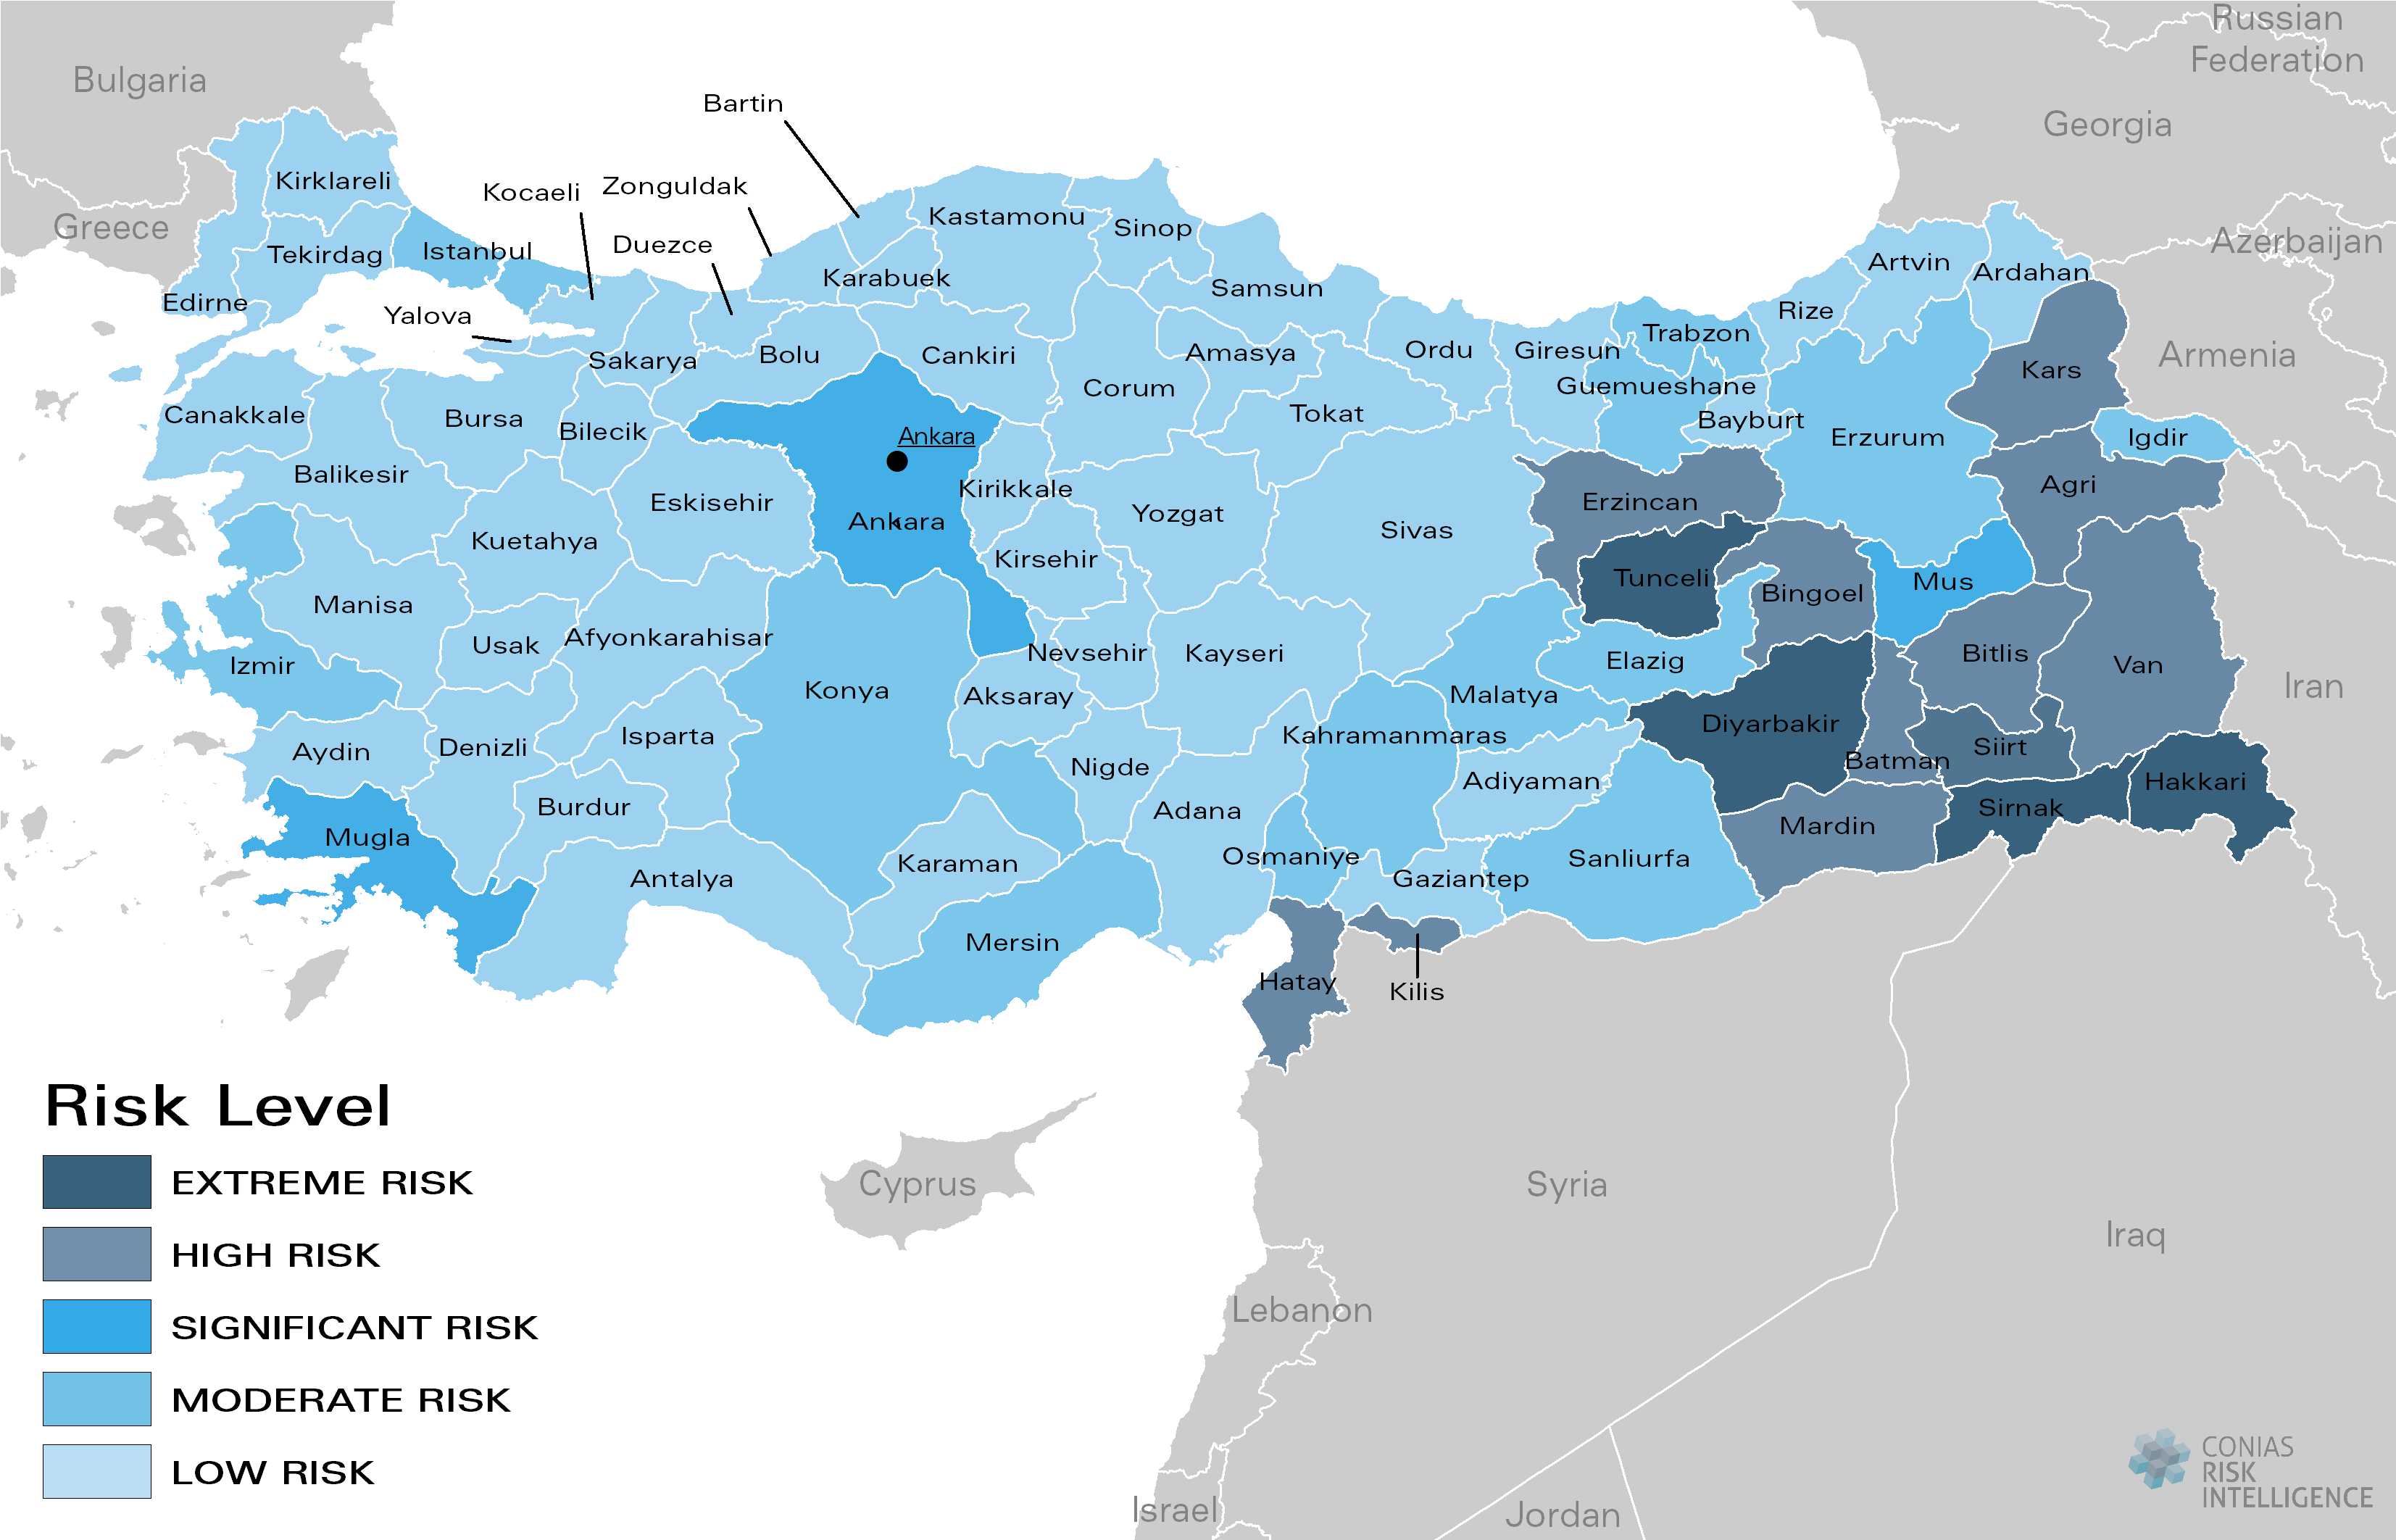 CONIAS Political Risk Maps Türkei